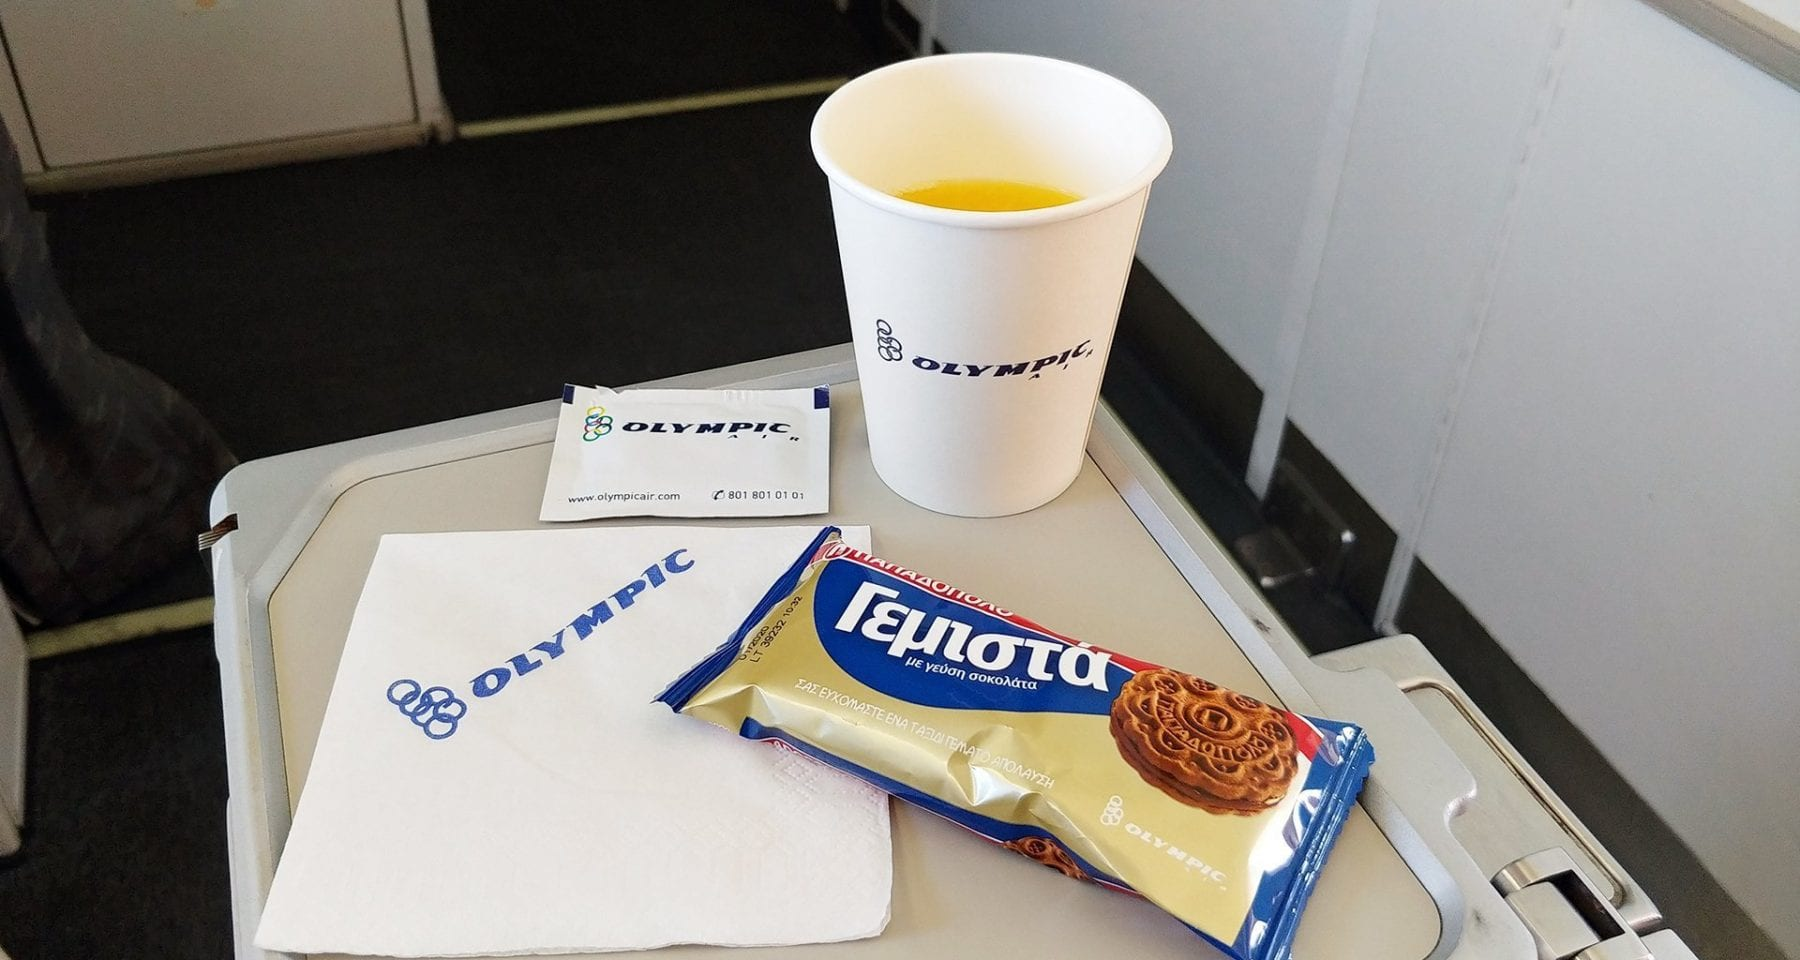 Aegean/Olympic Air airlines domestic flight snack